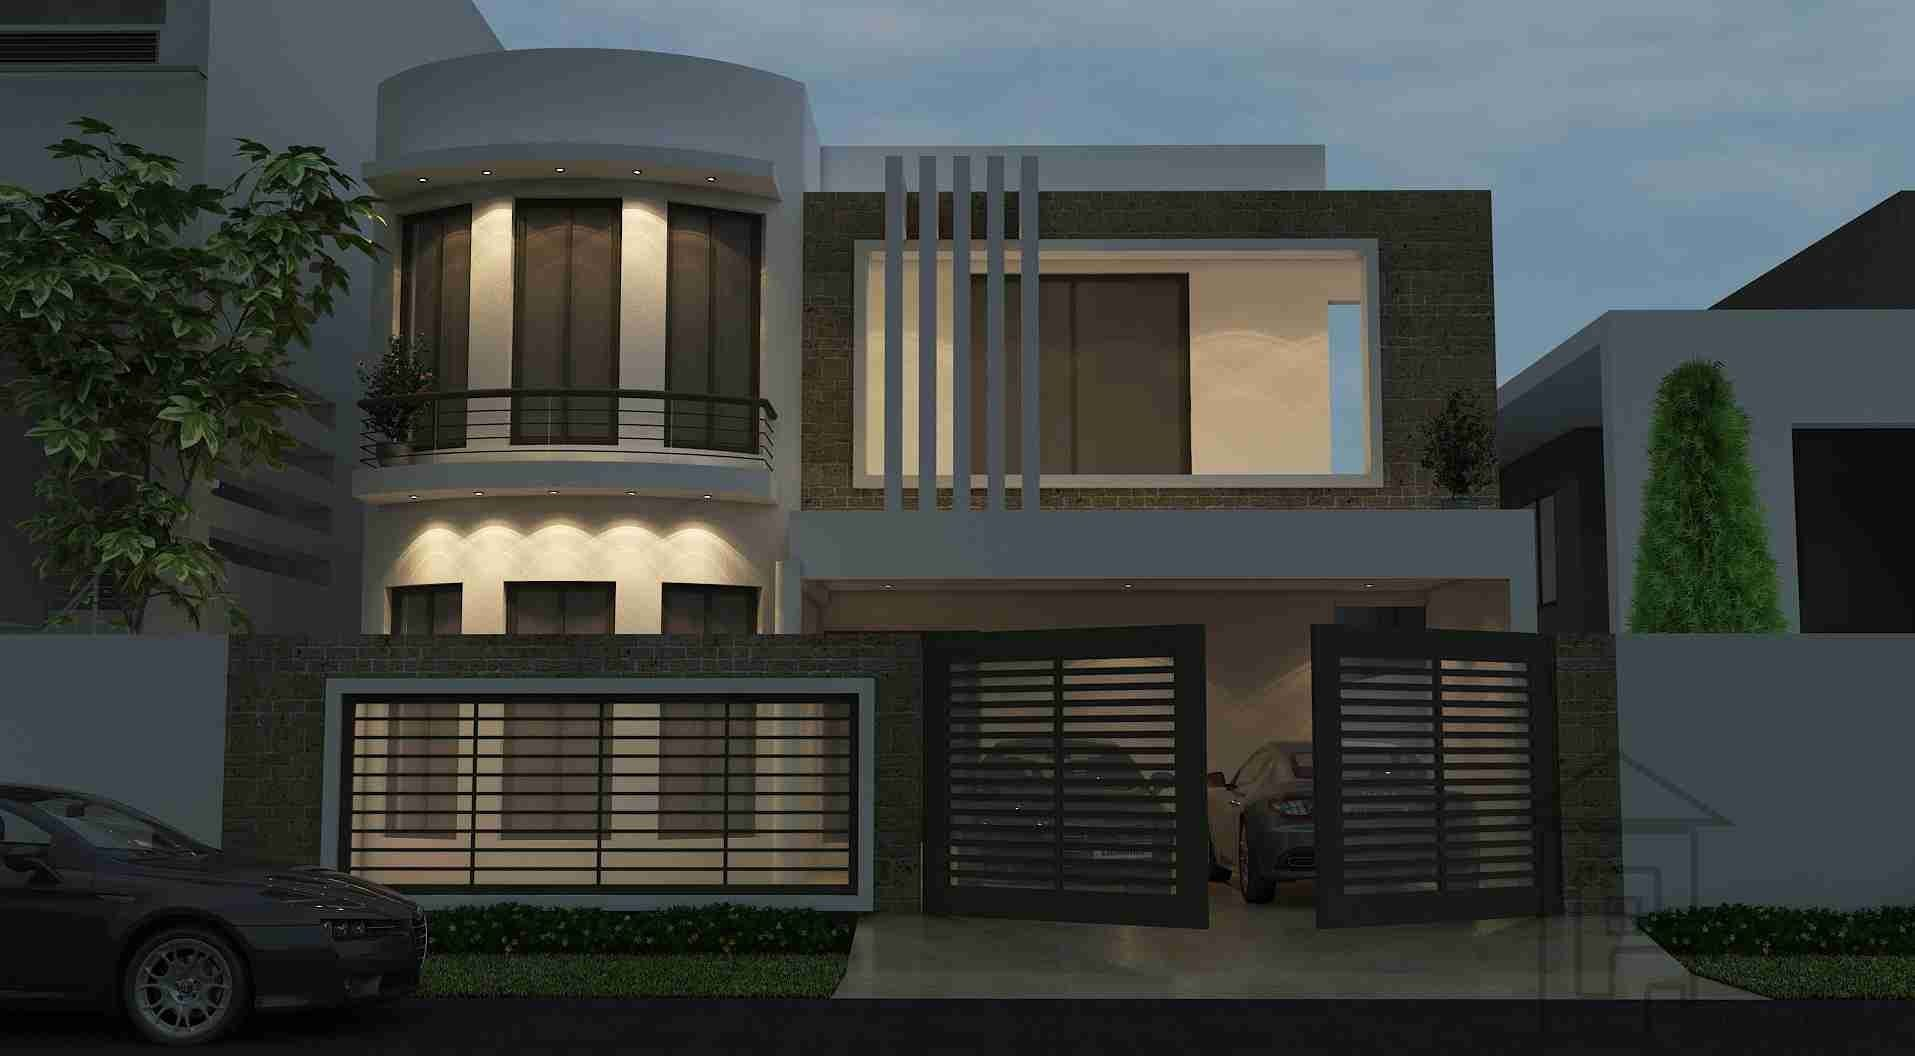 10 Marla house with front elevation and layout plans has 4 bedrooms and 4 attached bathrooms